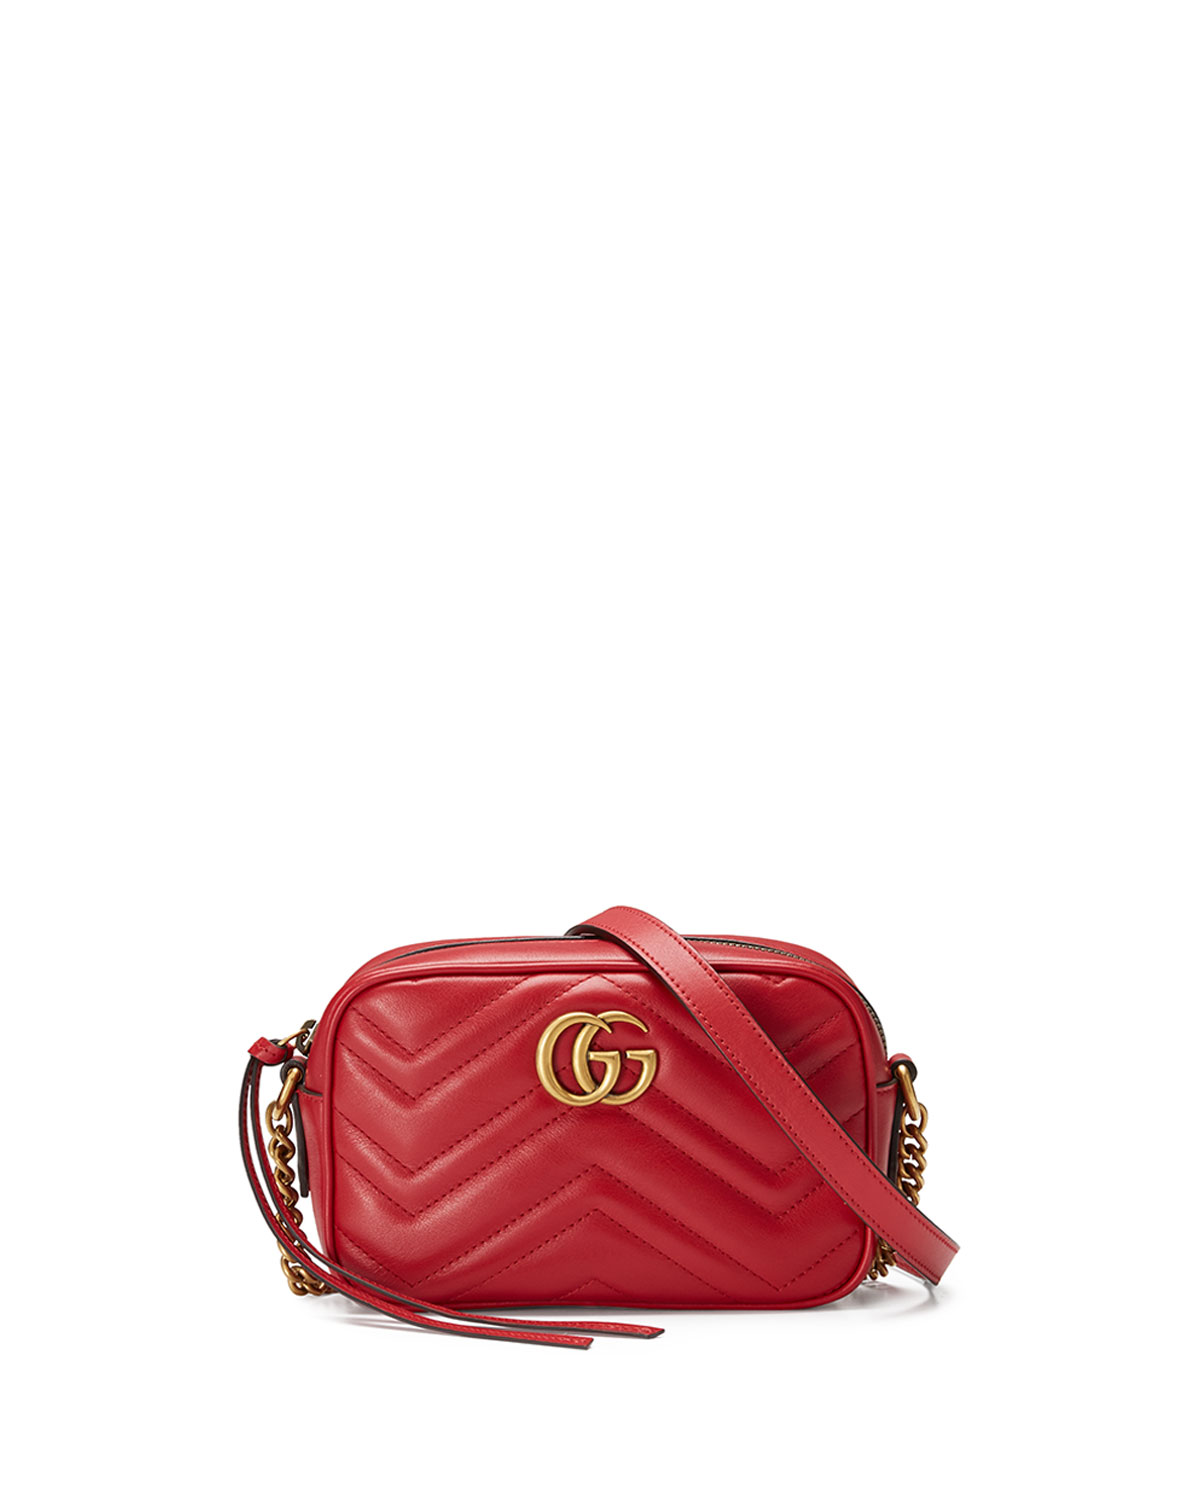 370fa4d33824 Gucci GG Marmont Mini Matelasse Camera Bag, Hibiscus Red | Neiman Marcus